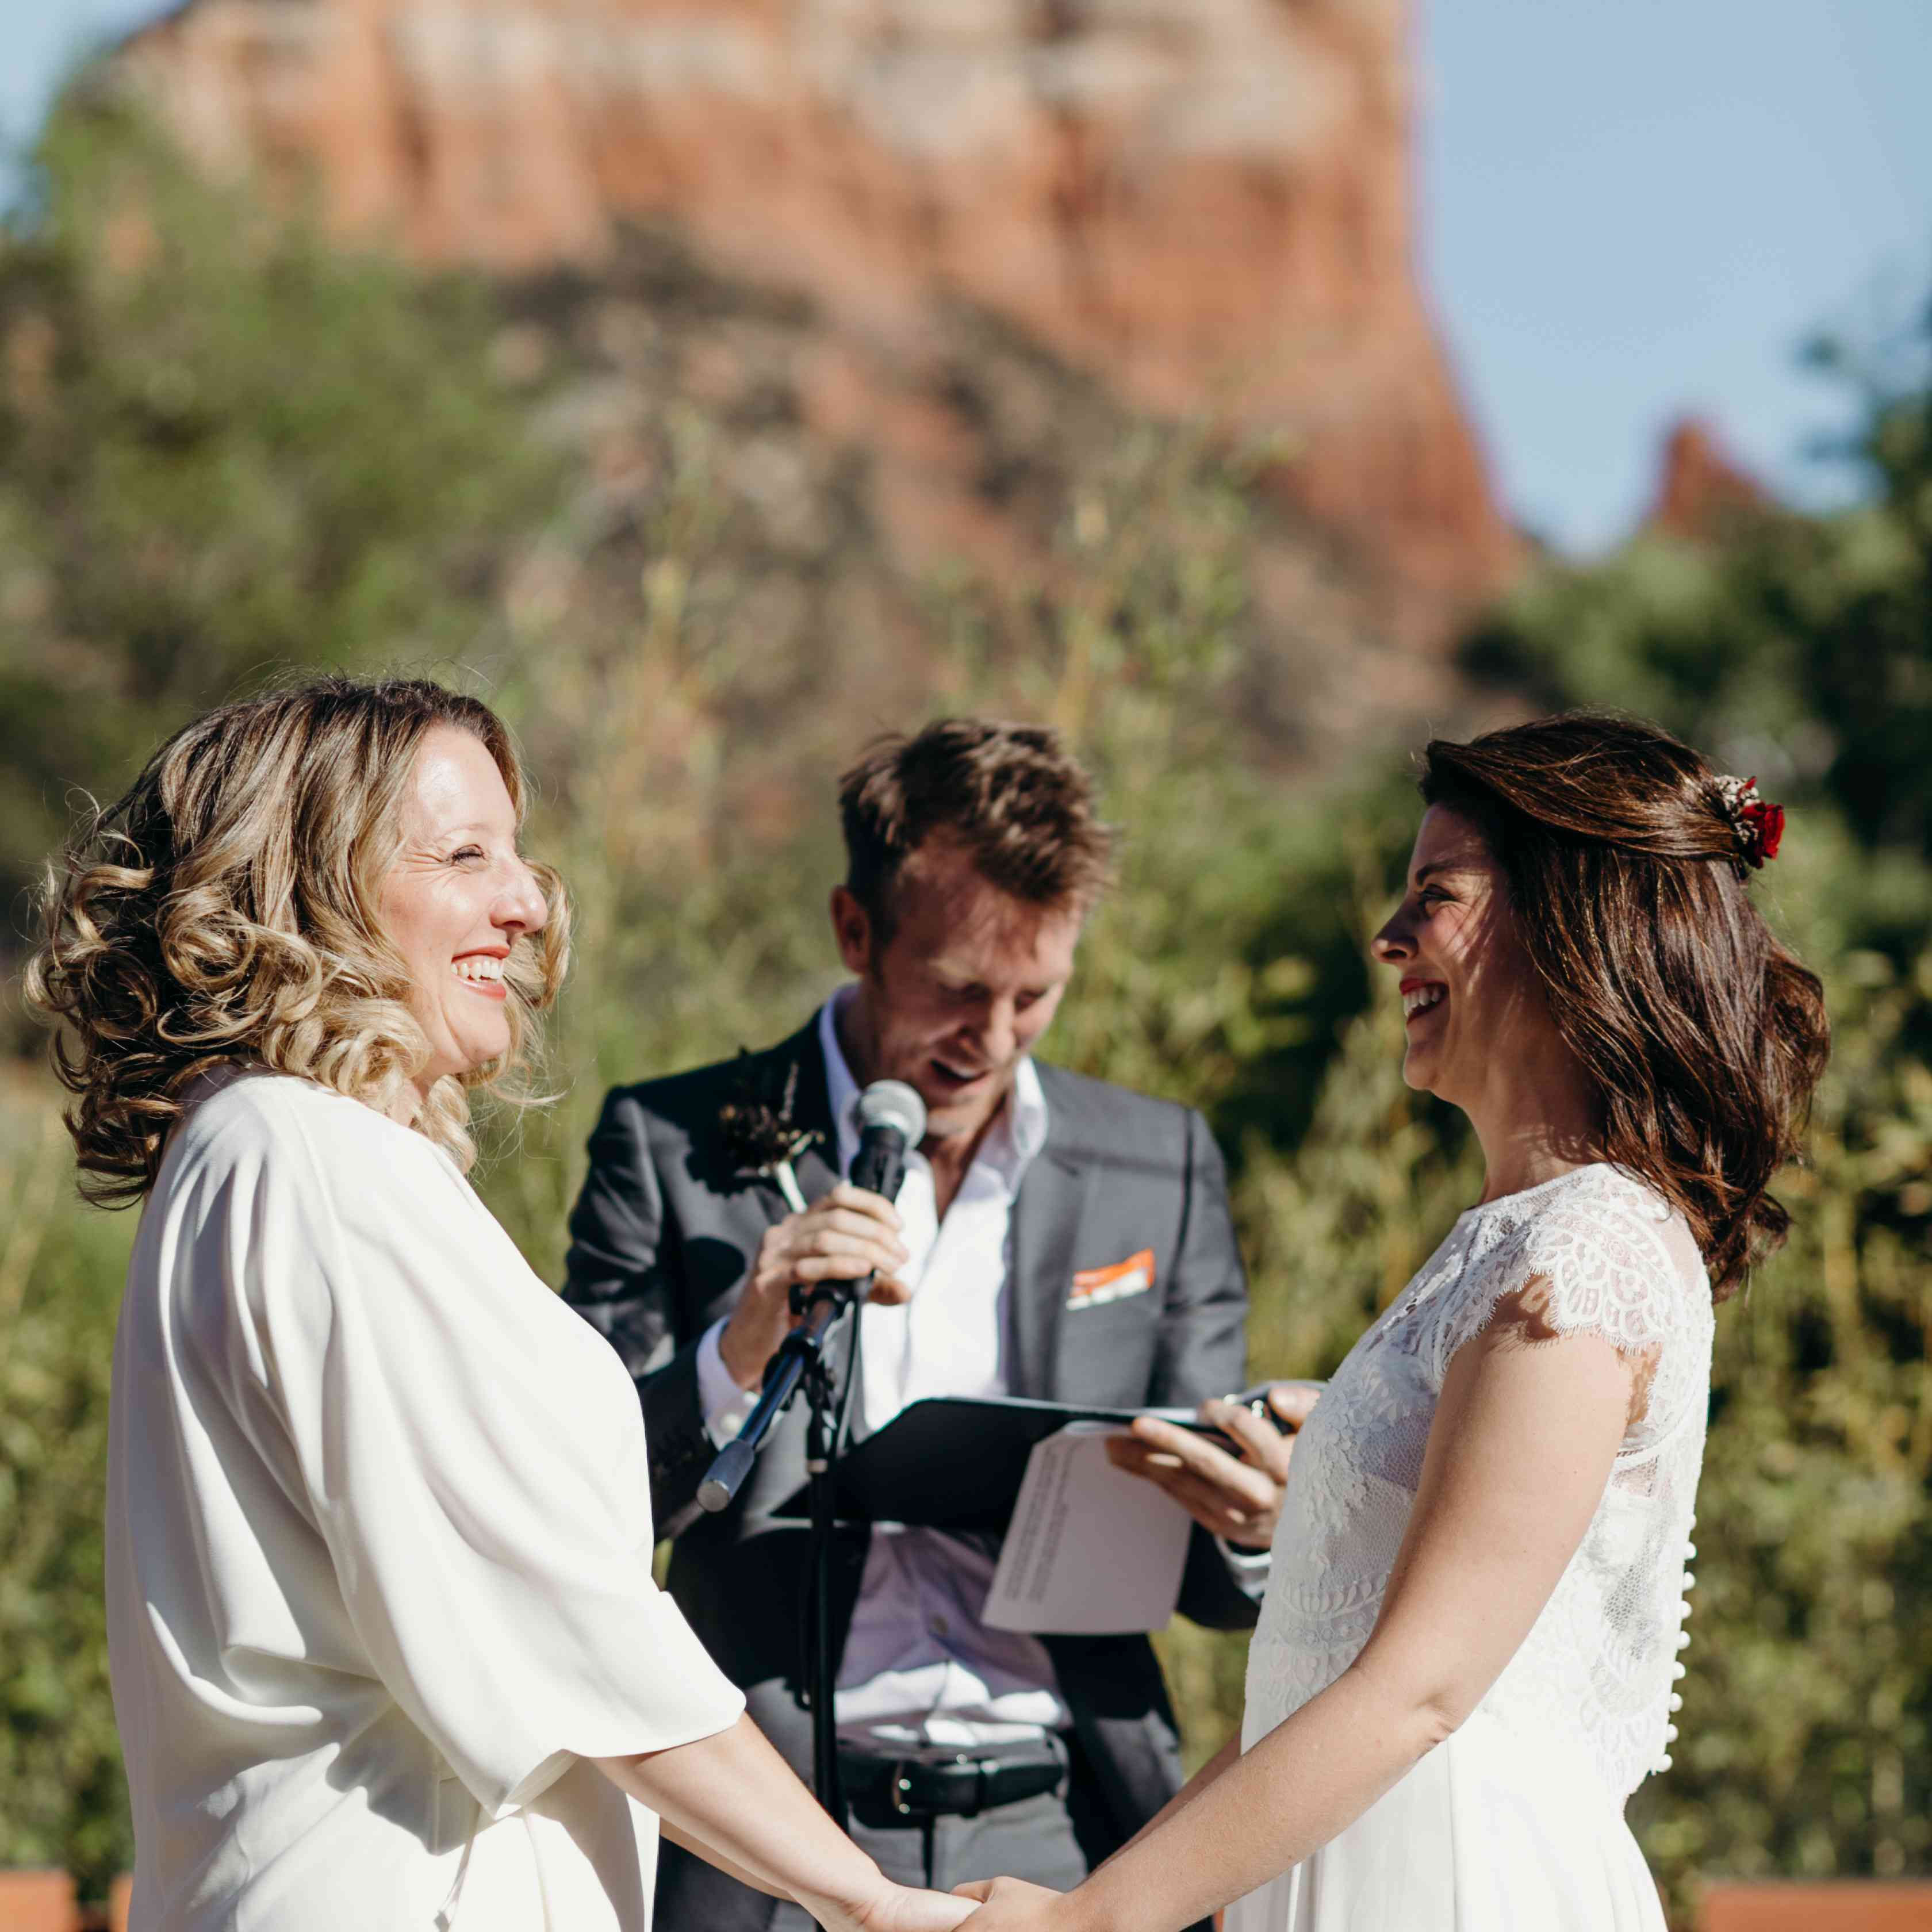 22 Wedding Ceremony Etiquette Tips from the Experts